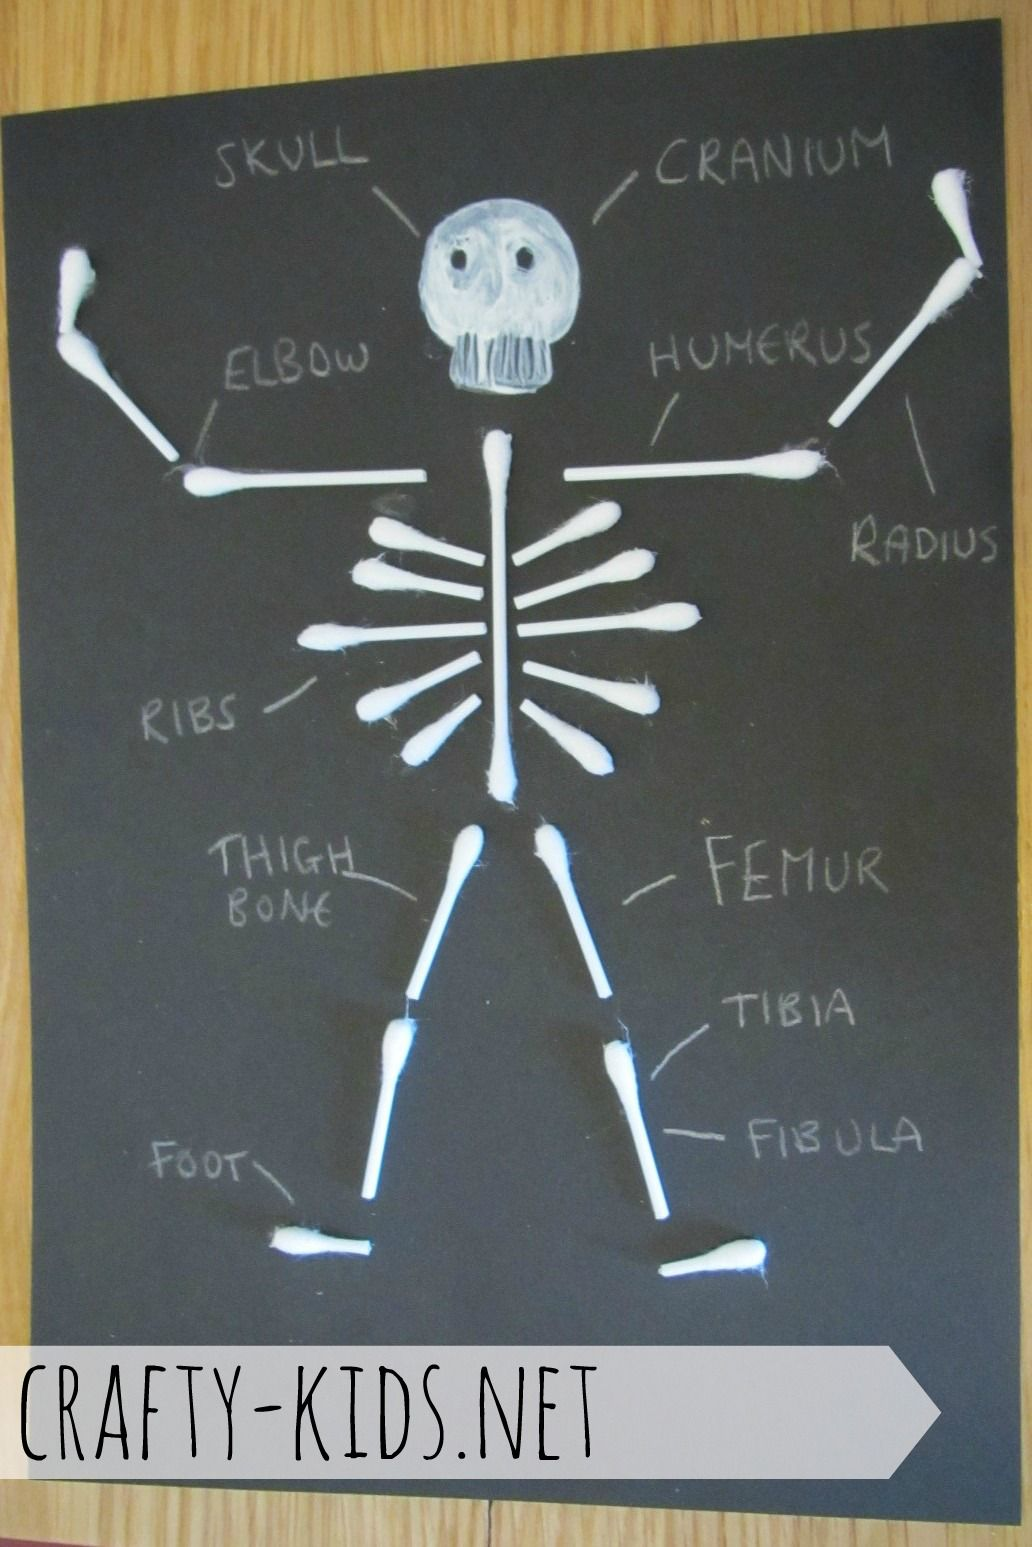 Crafty Kids Silly Skeleton An Education Craft To Learn About The Human Body